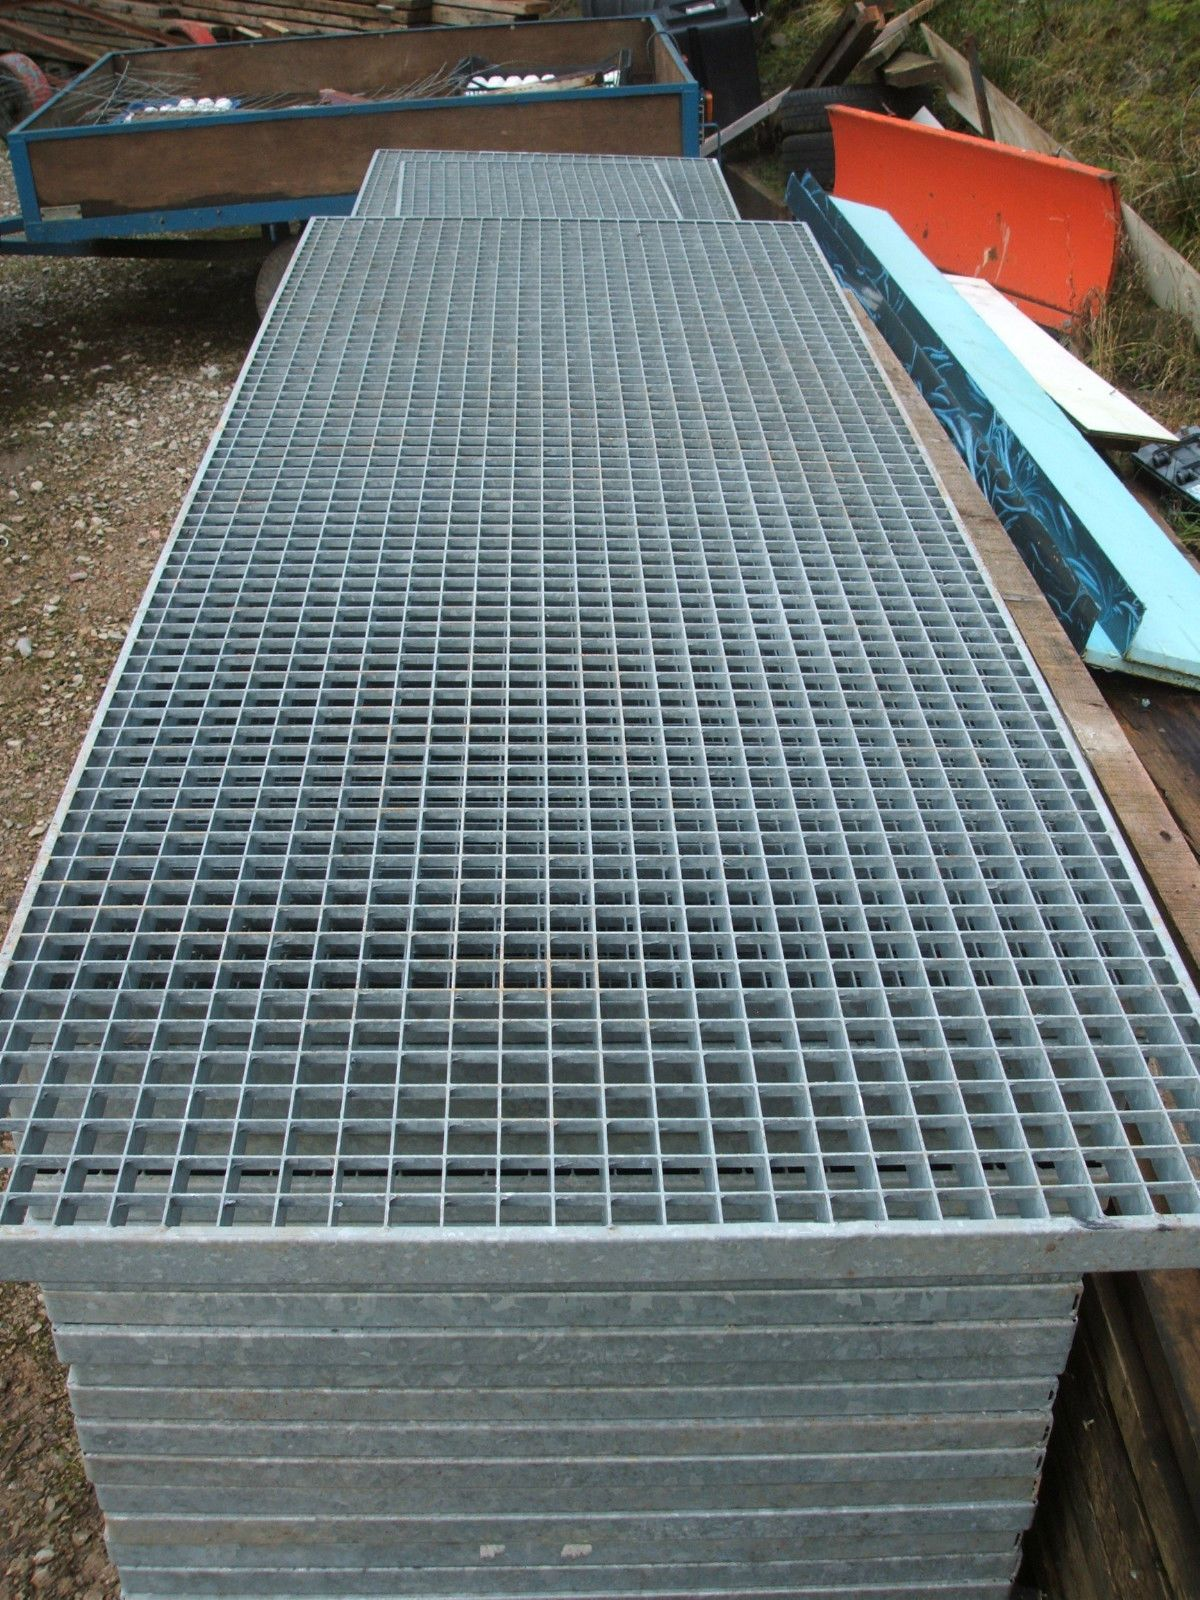 "Floor Forge Walkway, Steel Grating 69"" x 33 1/2"" Mezzanine ..."